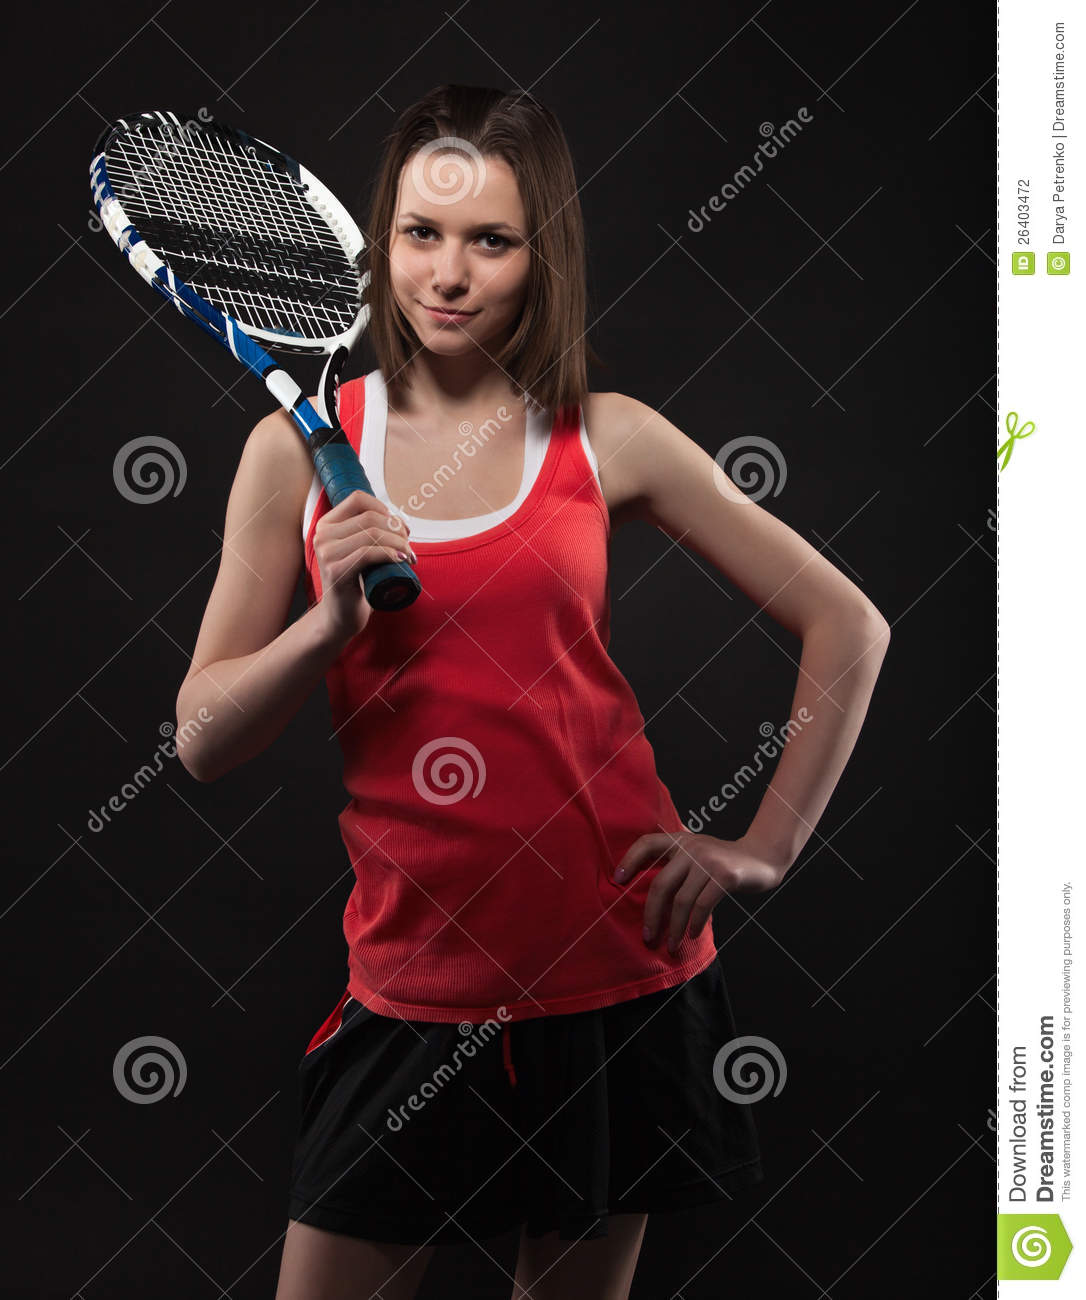 from Jefferson photo of teen tennis player